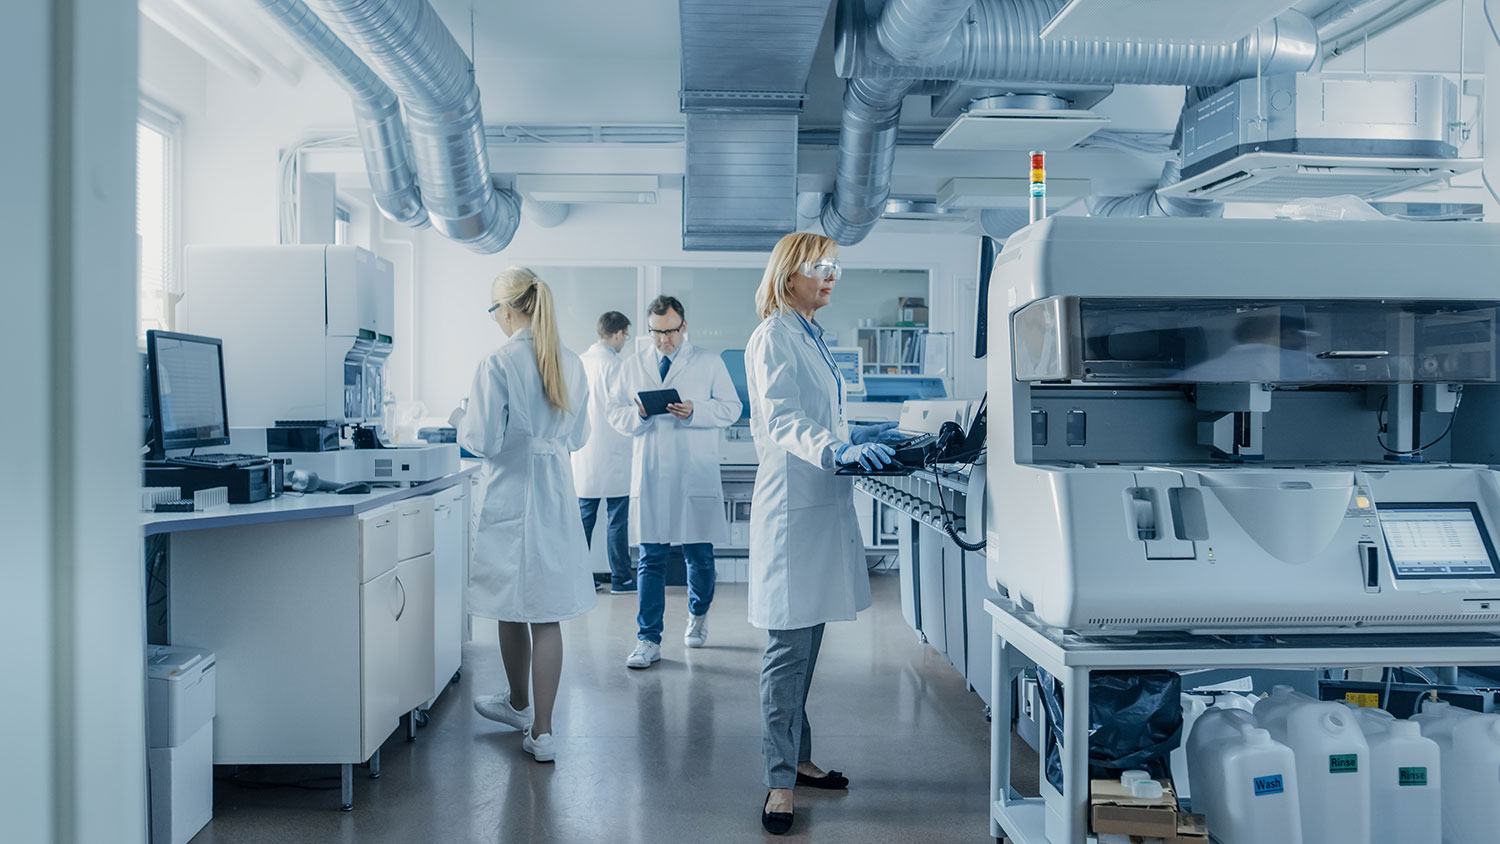 ip ratings blog featured image, scientists in a lab running tests